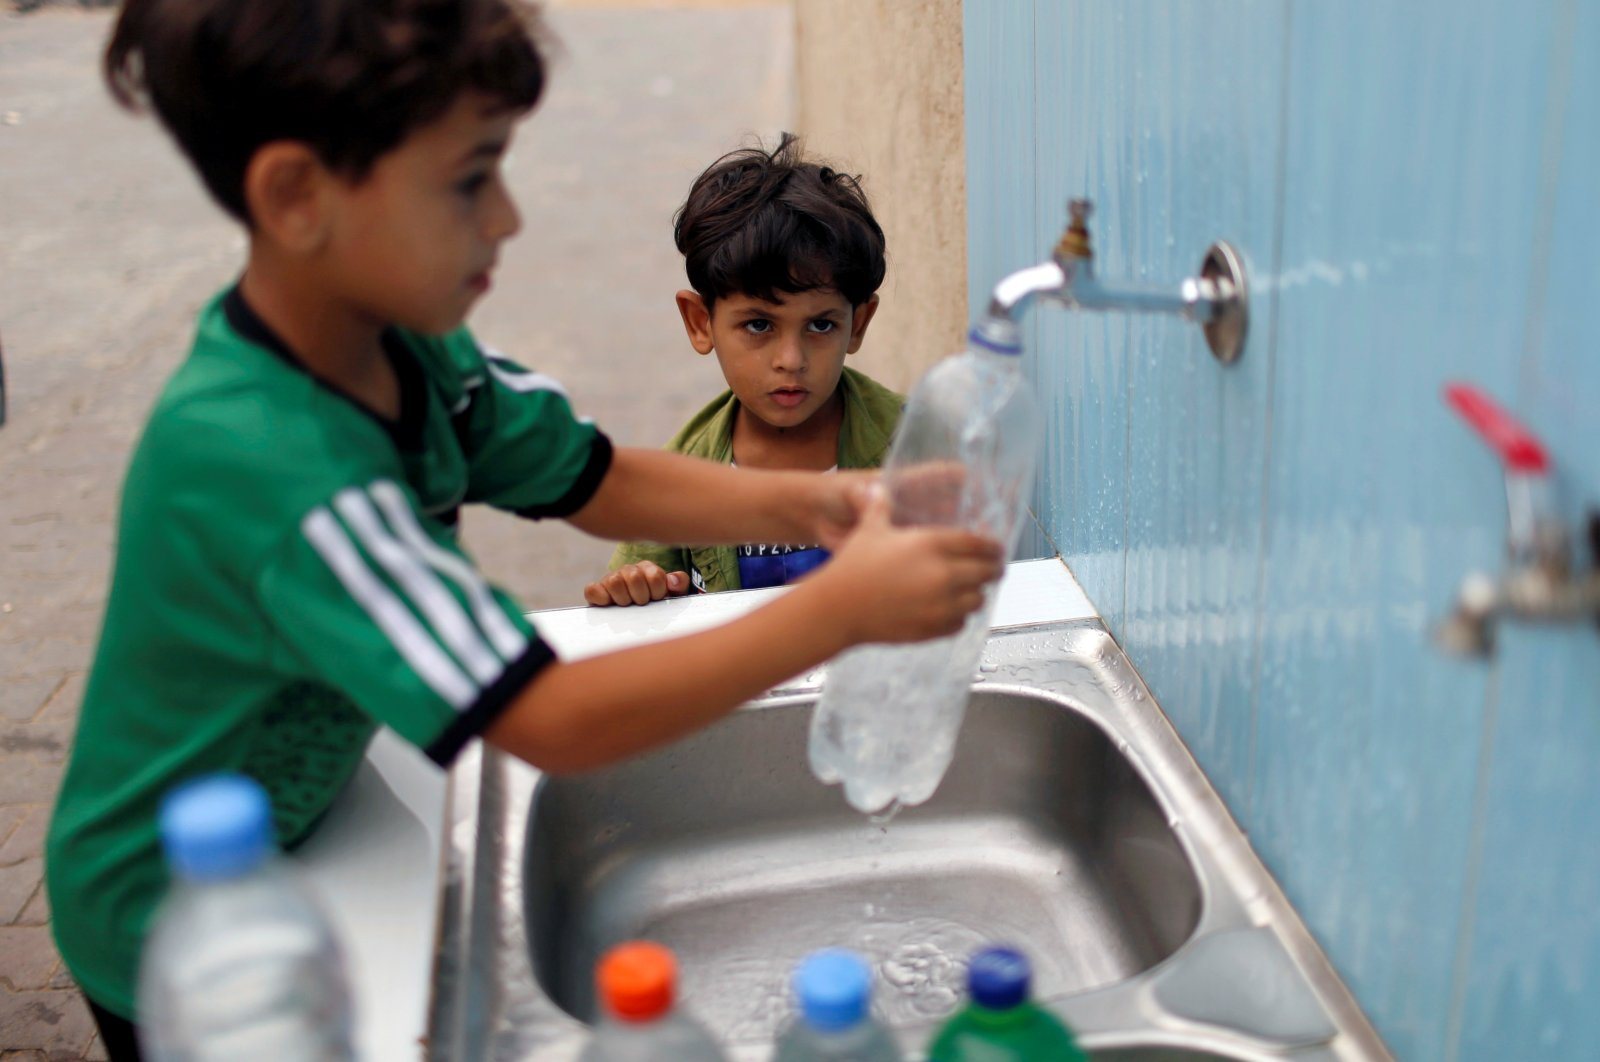 Palestinian boys fill bottles with water at a public tap during a lockdown amid the coronavirus outbreak, in Jabalia refugee camp in the northern Gaza Strip, Palestine, Sept. 10, 2020. (Reuters Photo)